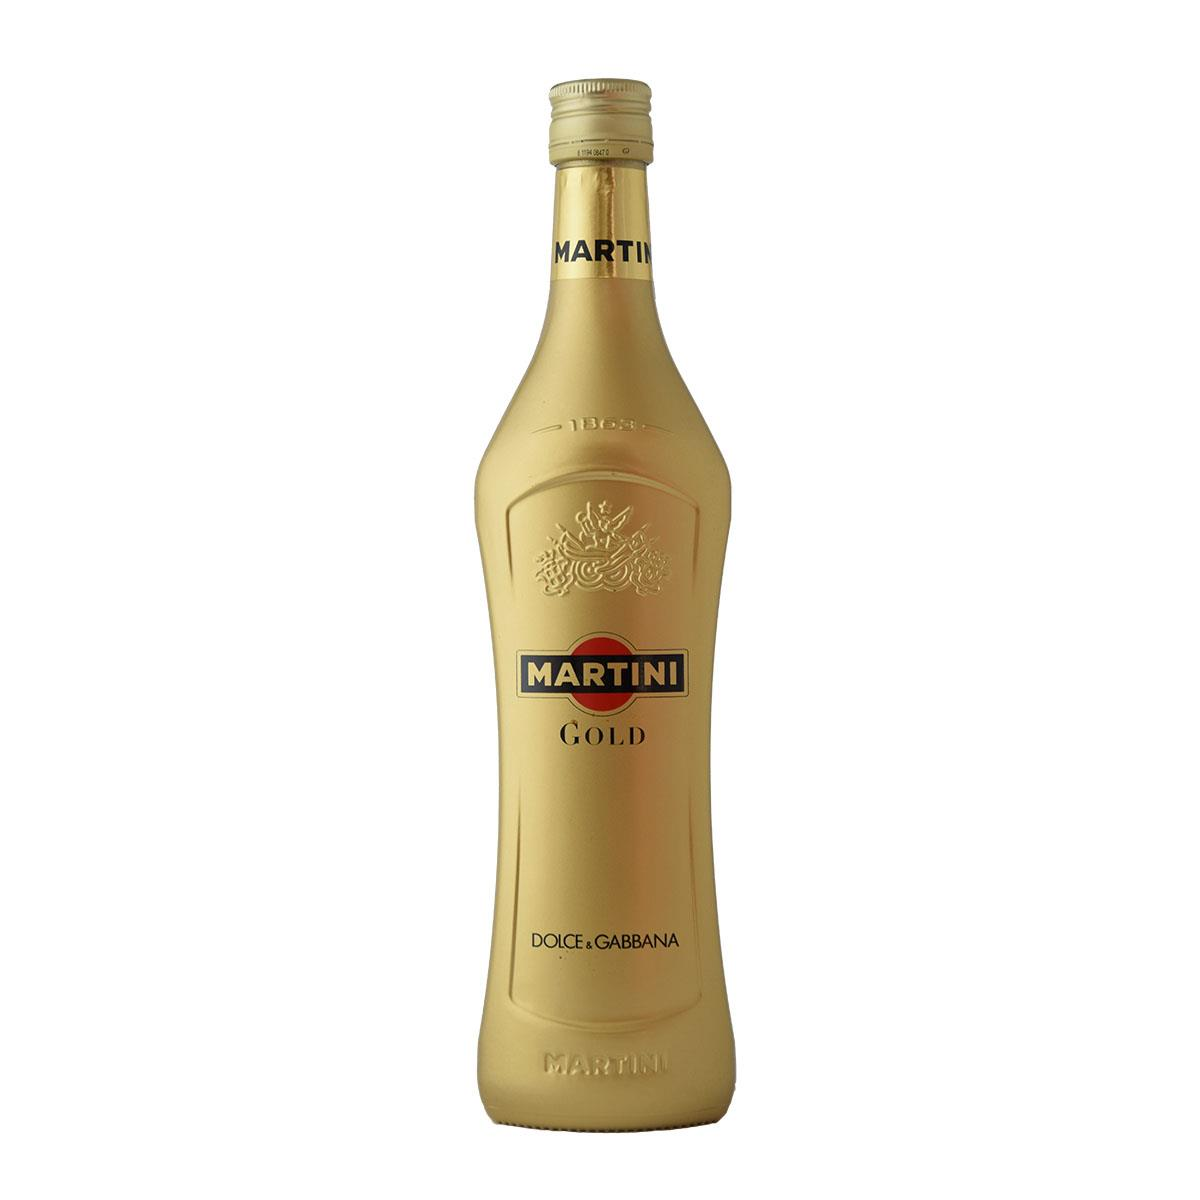 Martini Gold Dolce Gabbana Vermouth 750ml